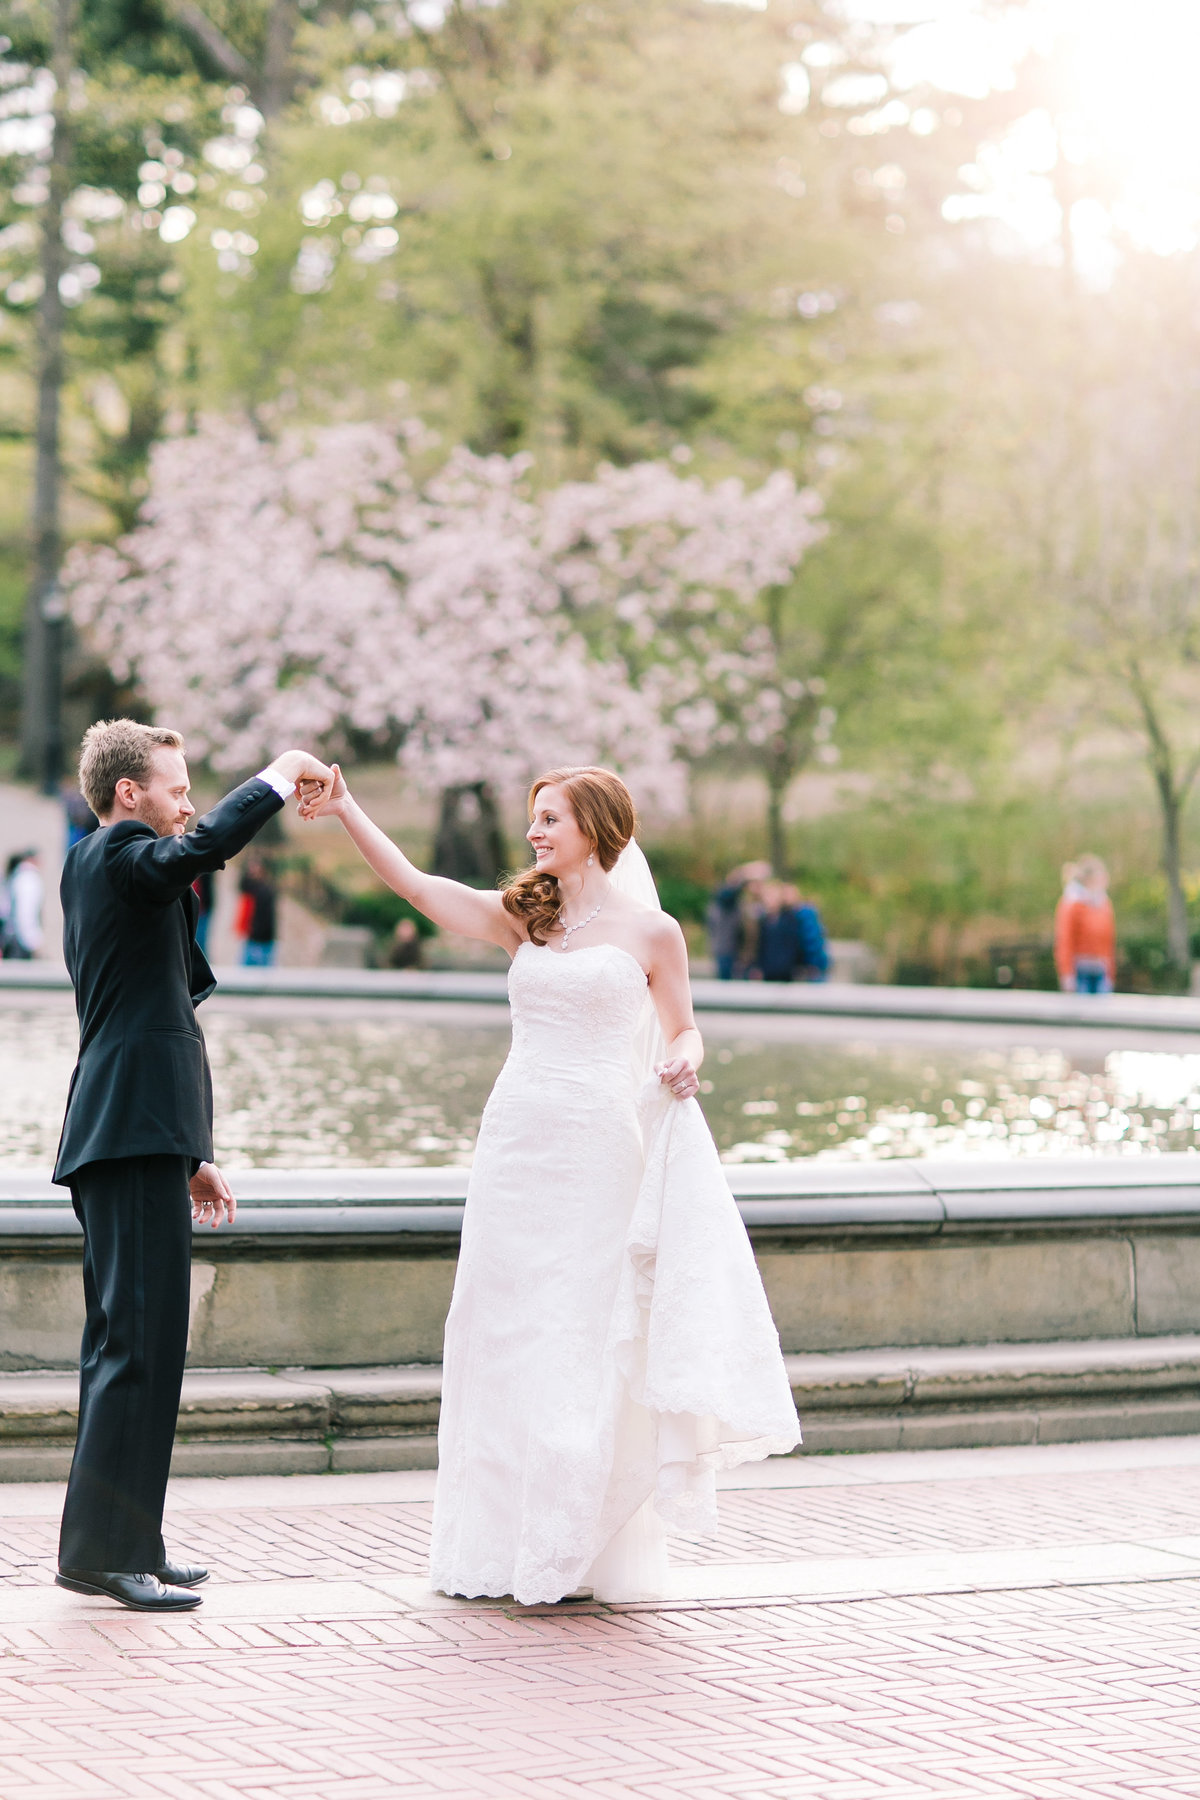 Groom twirling his bride at sunset in central park